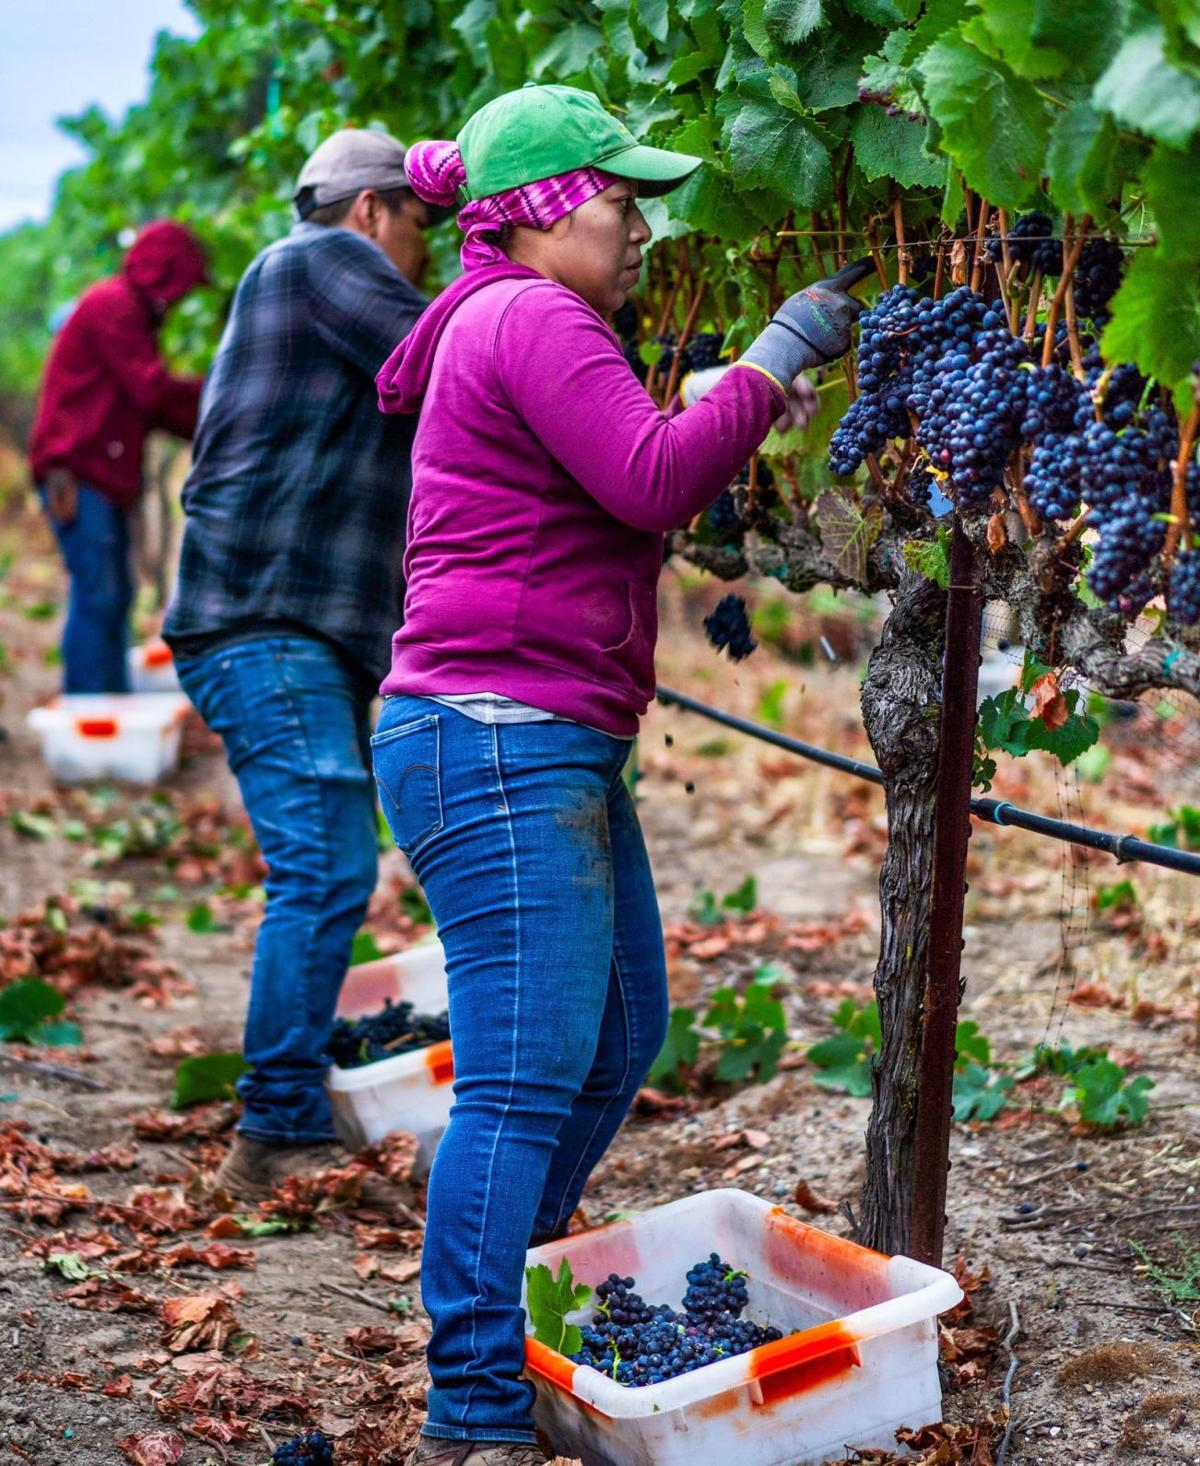 Picking Pinot Noir grapes